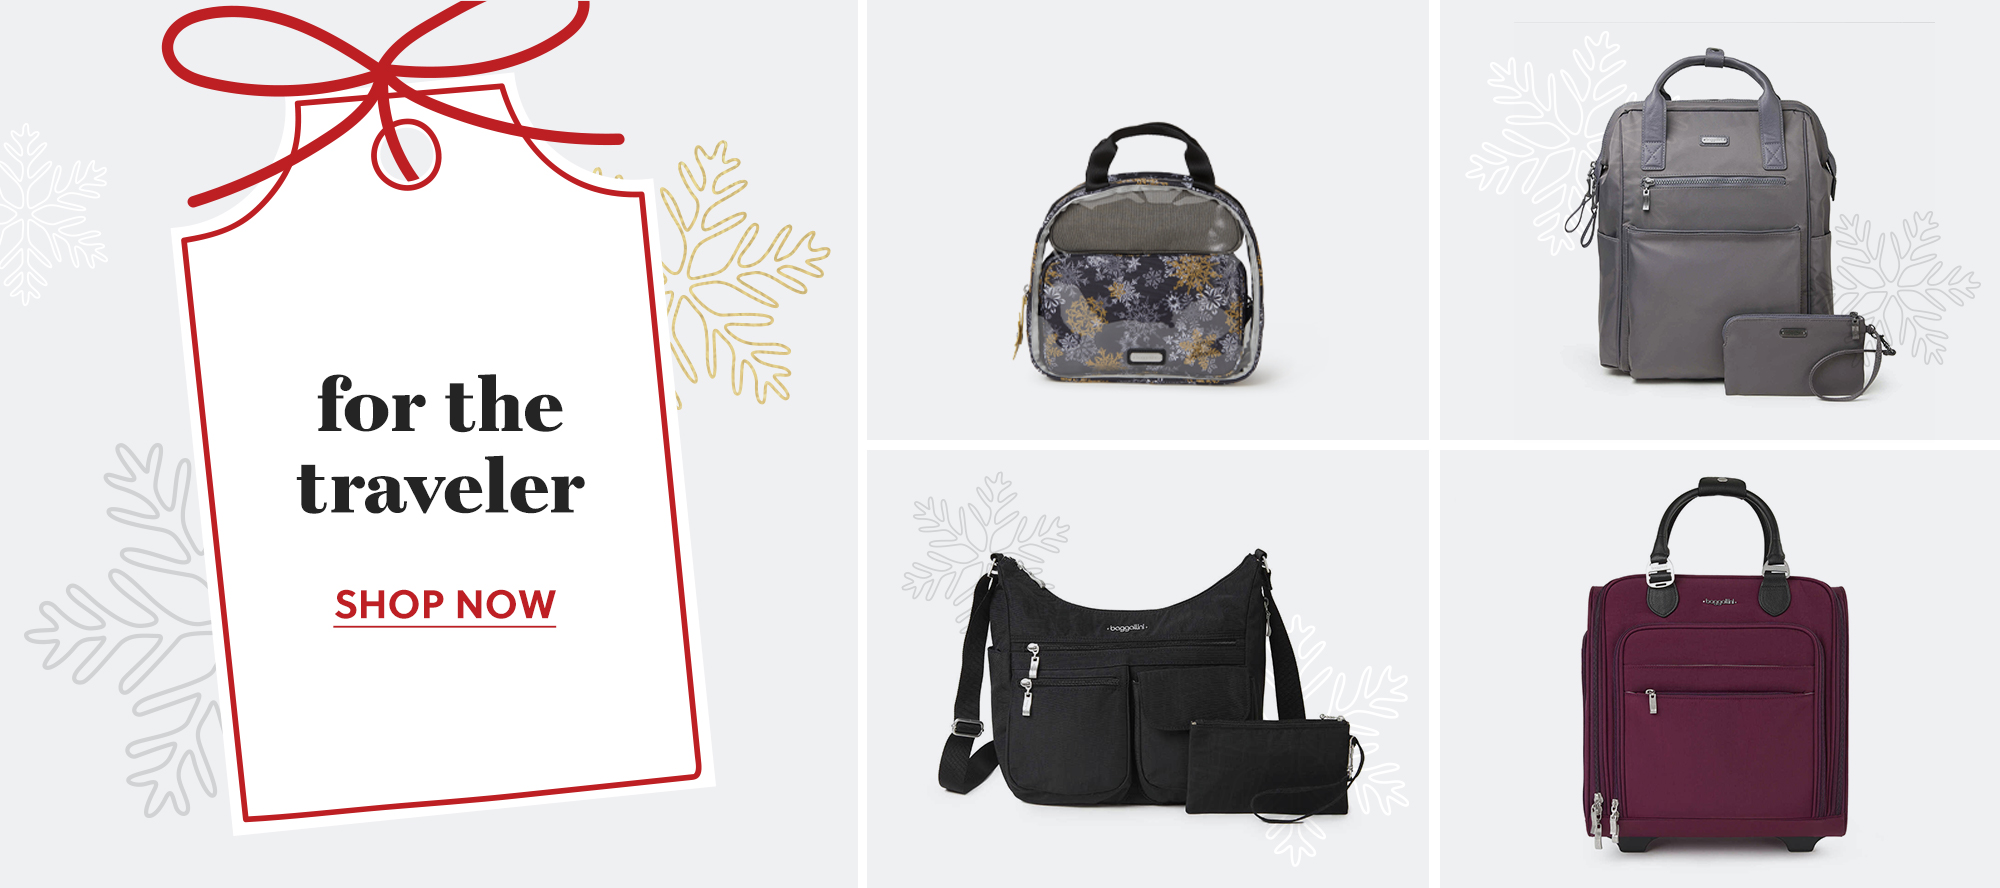 An assorment of bags intended for the traveler with a snowflake background